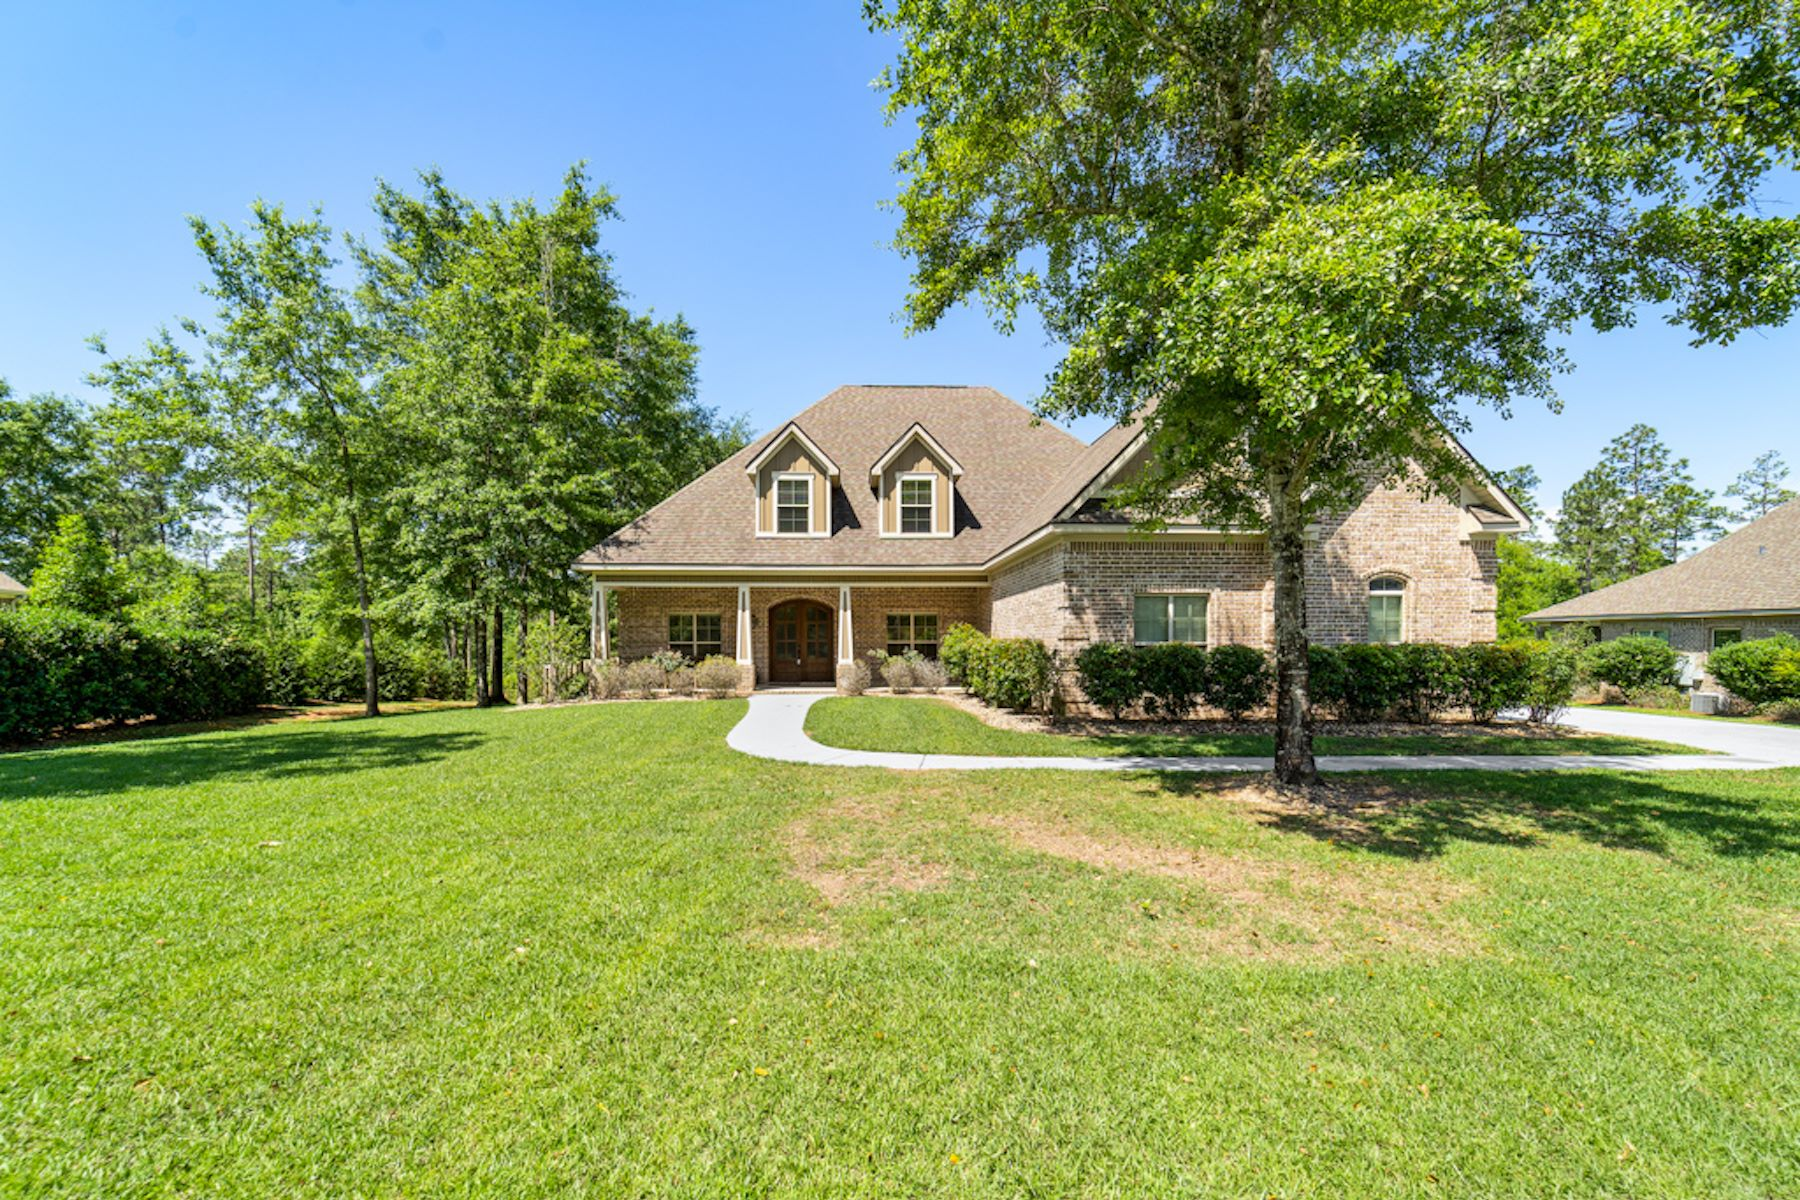 Single Family Home for Active at 32247 Whimbret Way Spanish Fort, Alabama 36527 United States